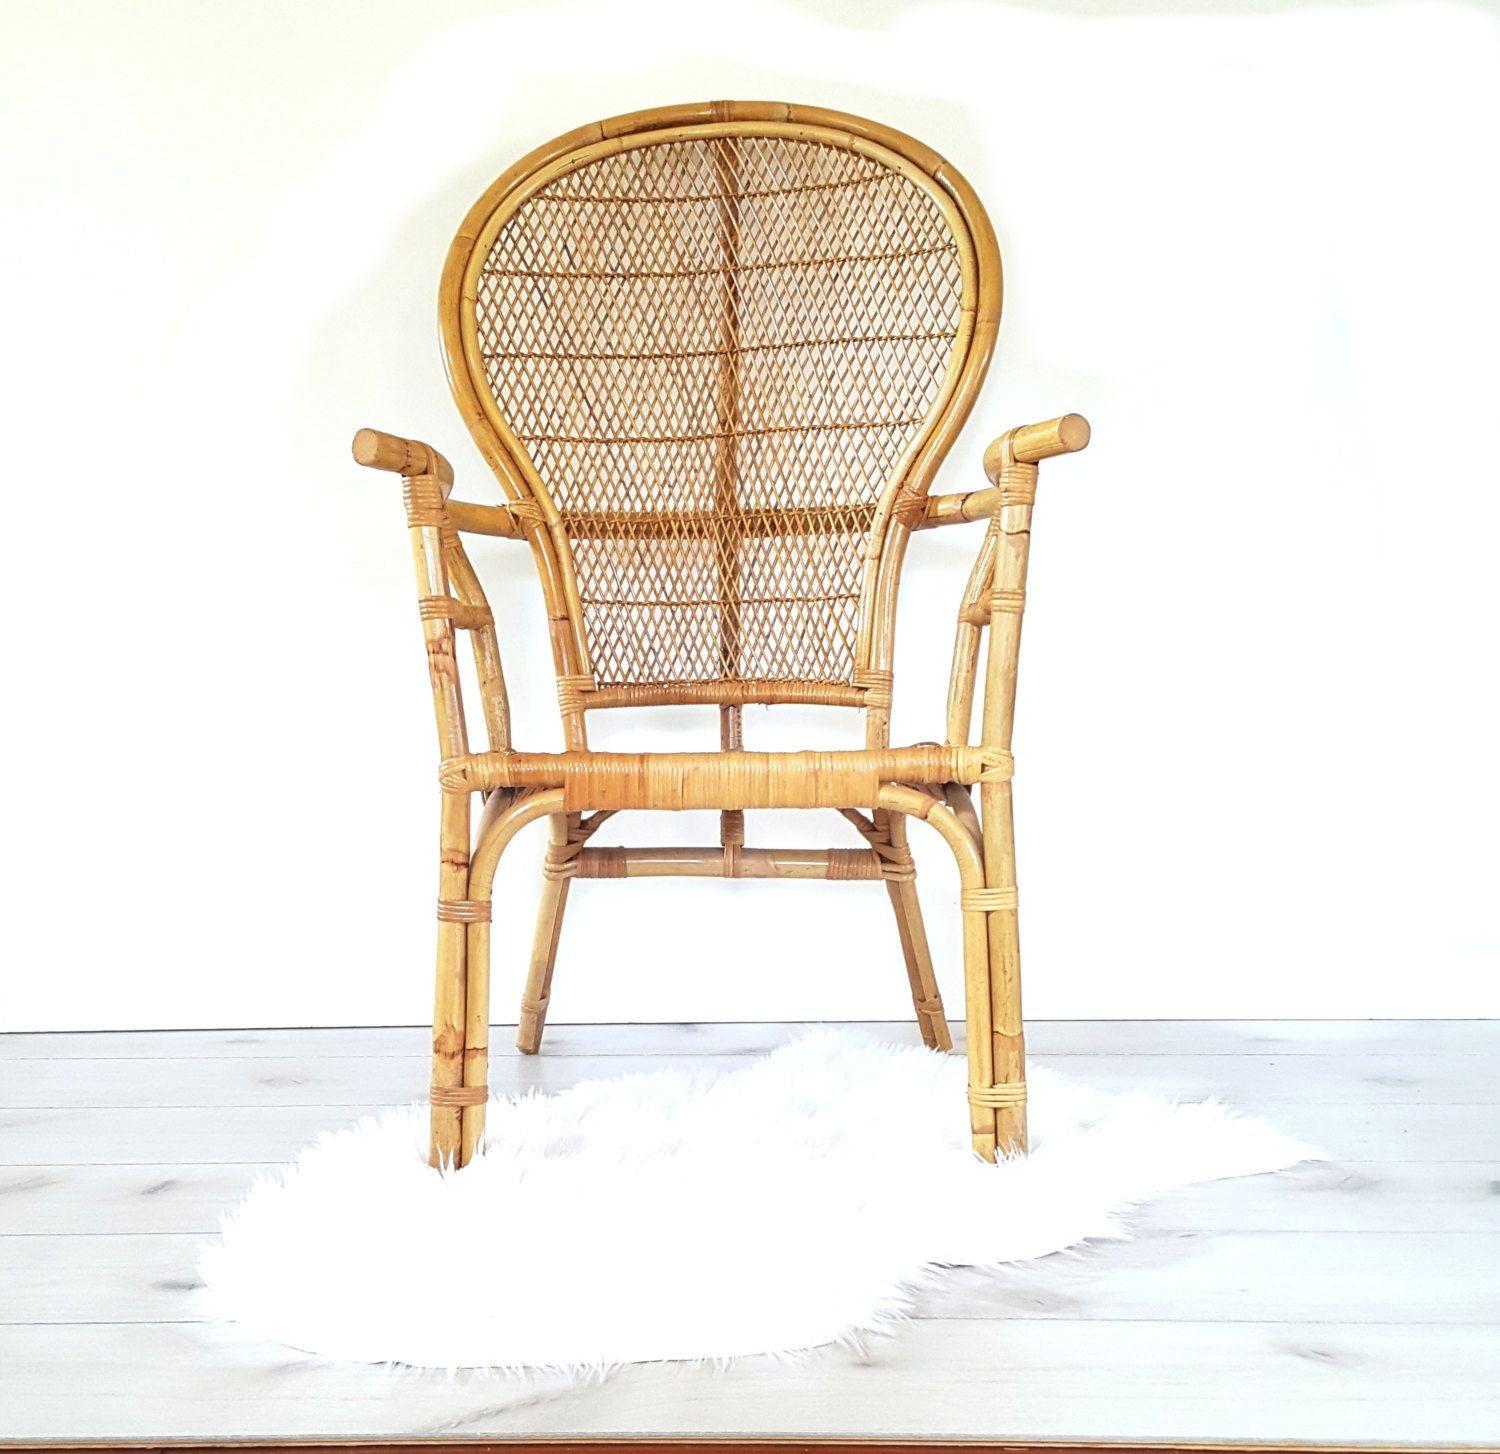 Ordinaire Bamboo Arm Chair ~ Vintage Bentwood Bamboo/ Rattan High Back/ Fan Back  Accent Chair ~ Boho Home Decor By LUCKYHOMEFINDS On Etsy